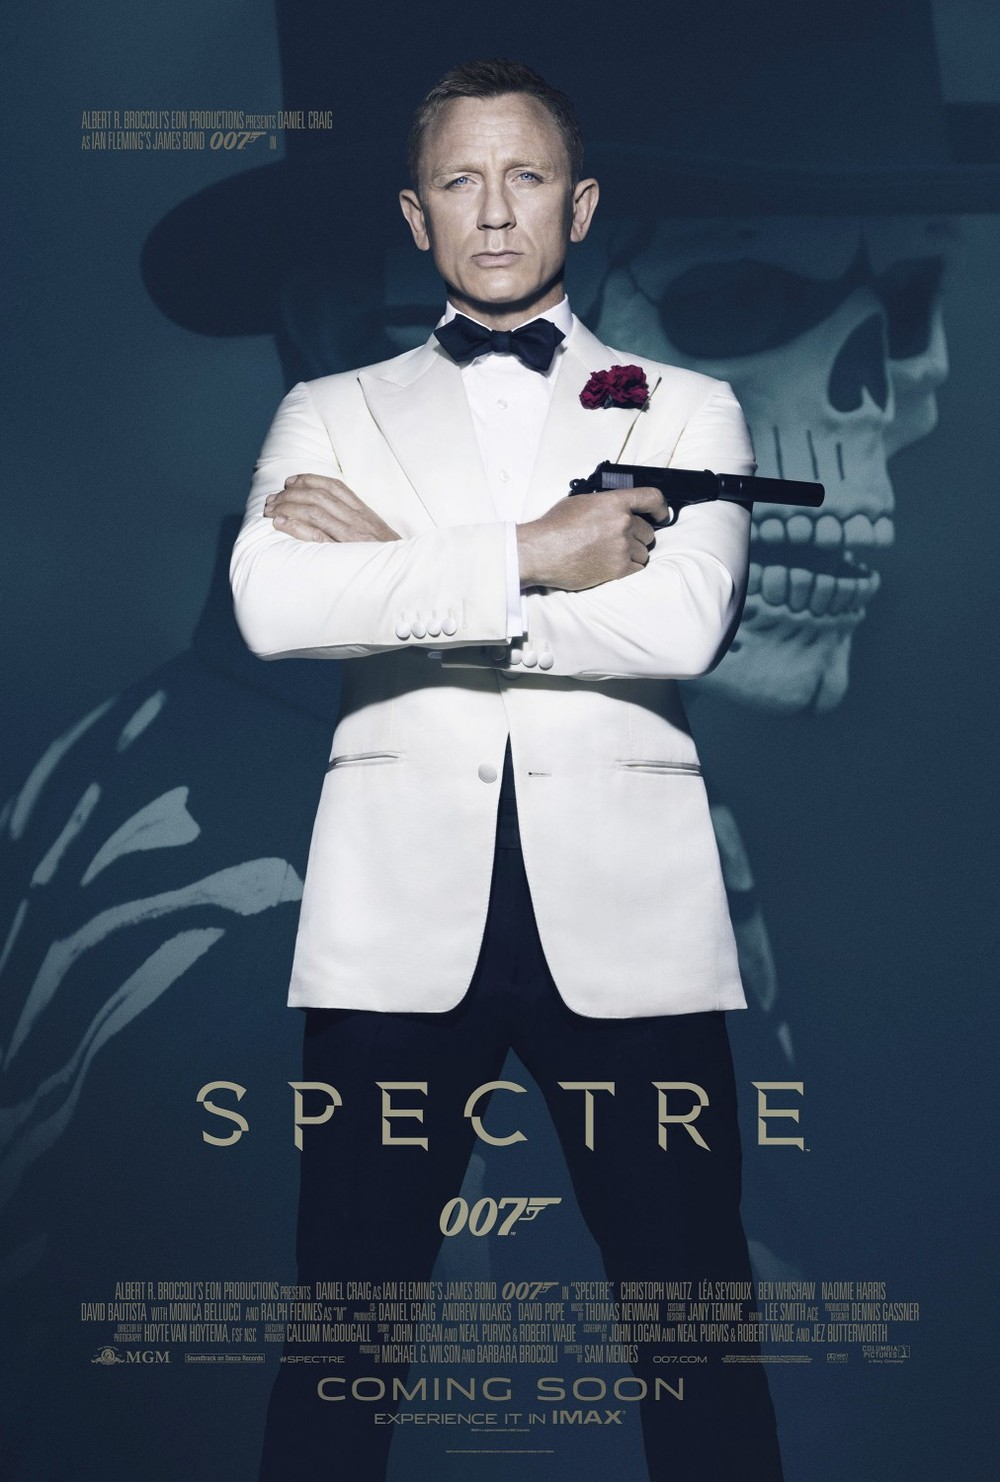 COME ON. This is Stock Photography James Bond standing with his arms folded in front of a still from the movie of James Bond wearing a mask, which only has any significance in the first (and best) 10 minutes of the film. Bad.